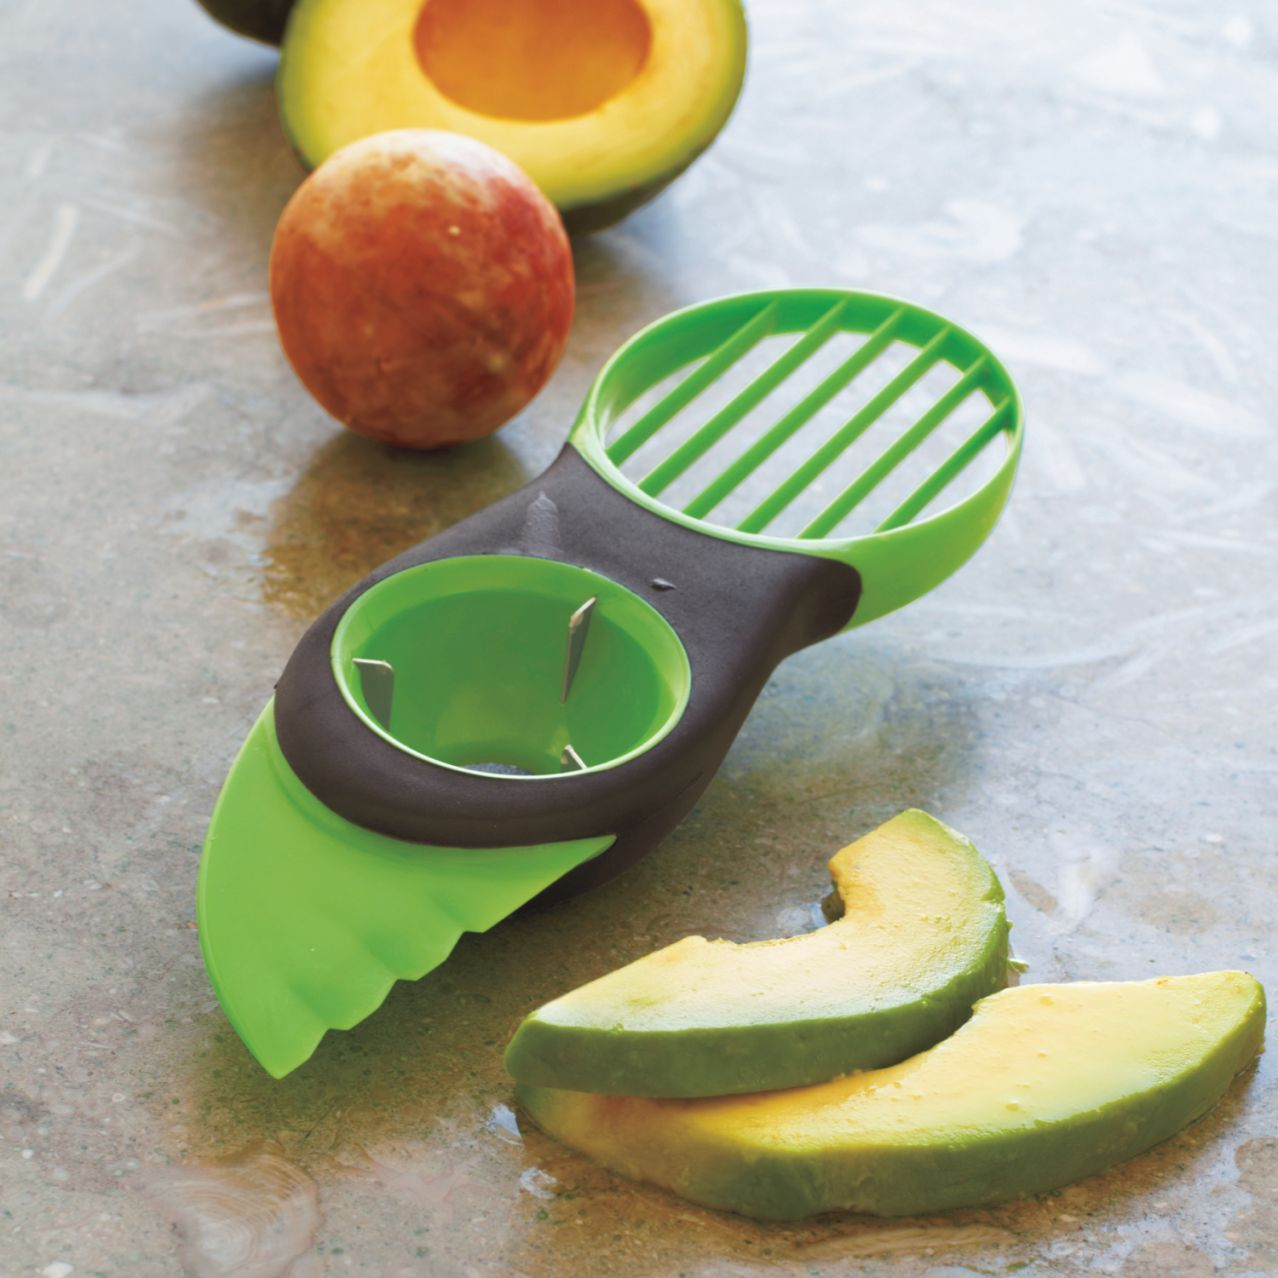 Zulily Kitchen Tools Oxo Good Grips 3 In 1 Avocado Slicer Registry Ideas